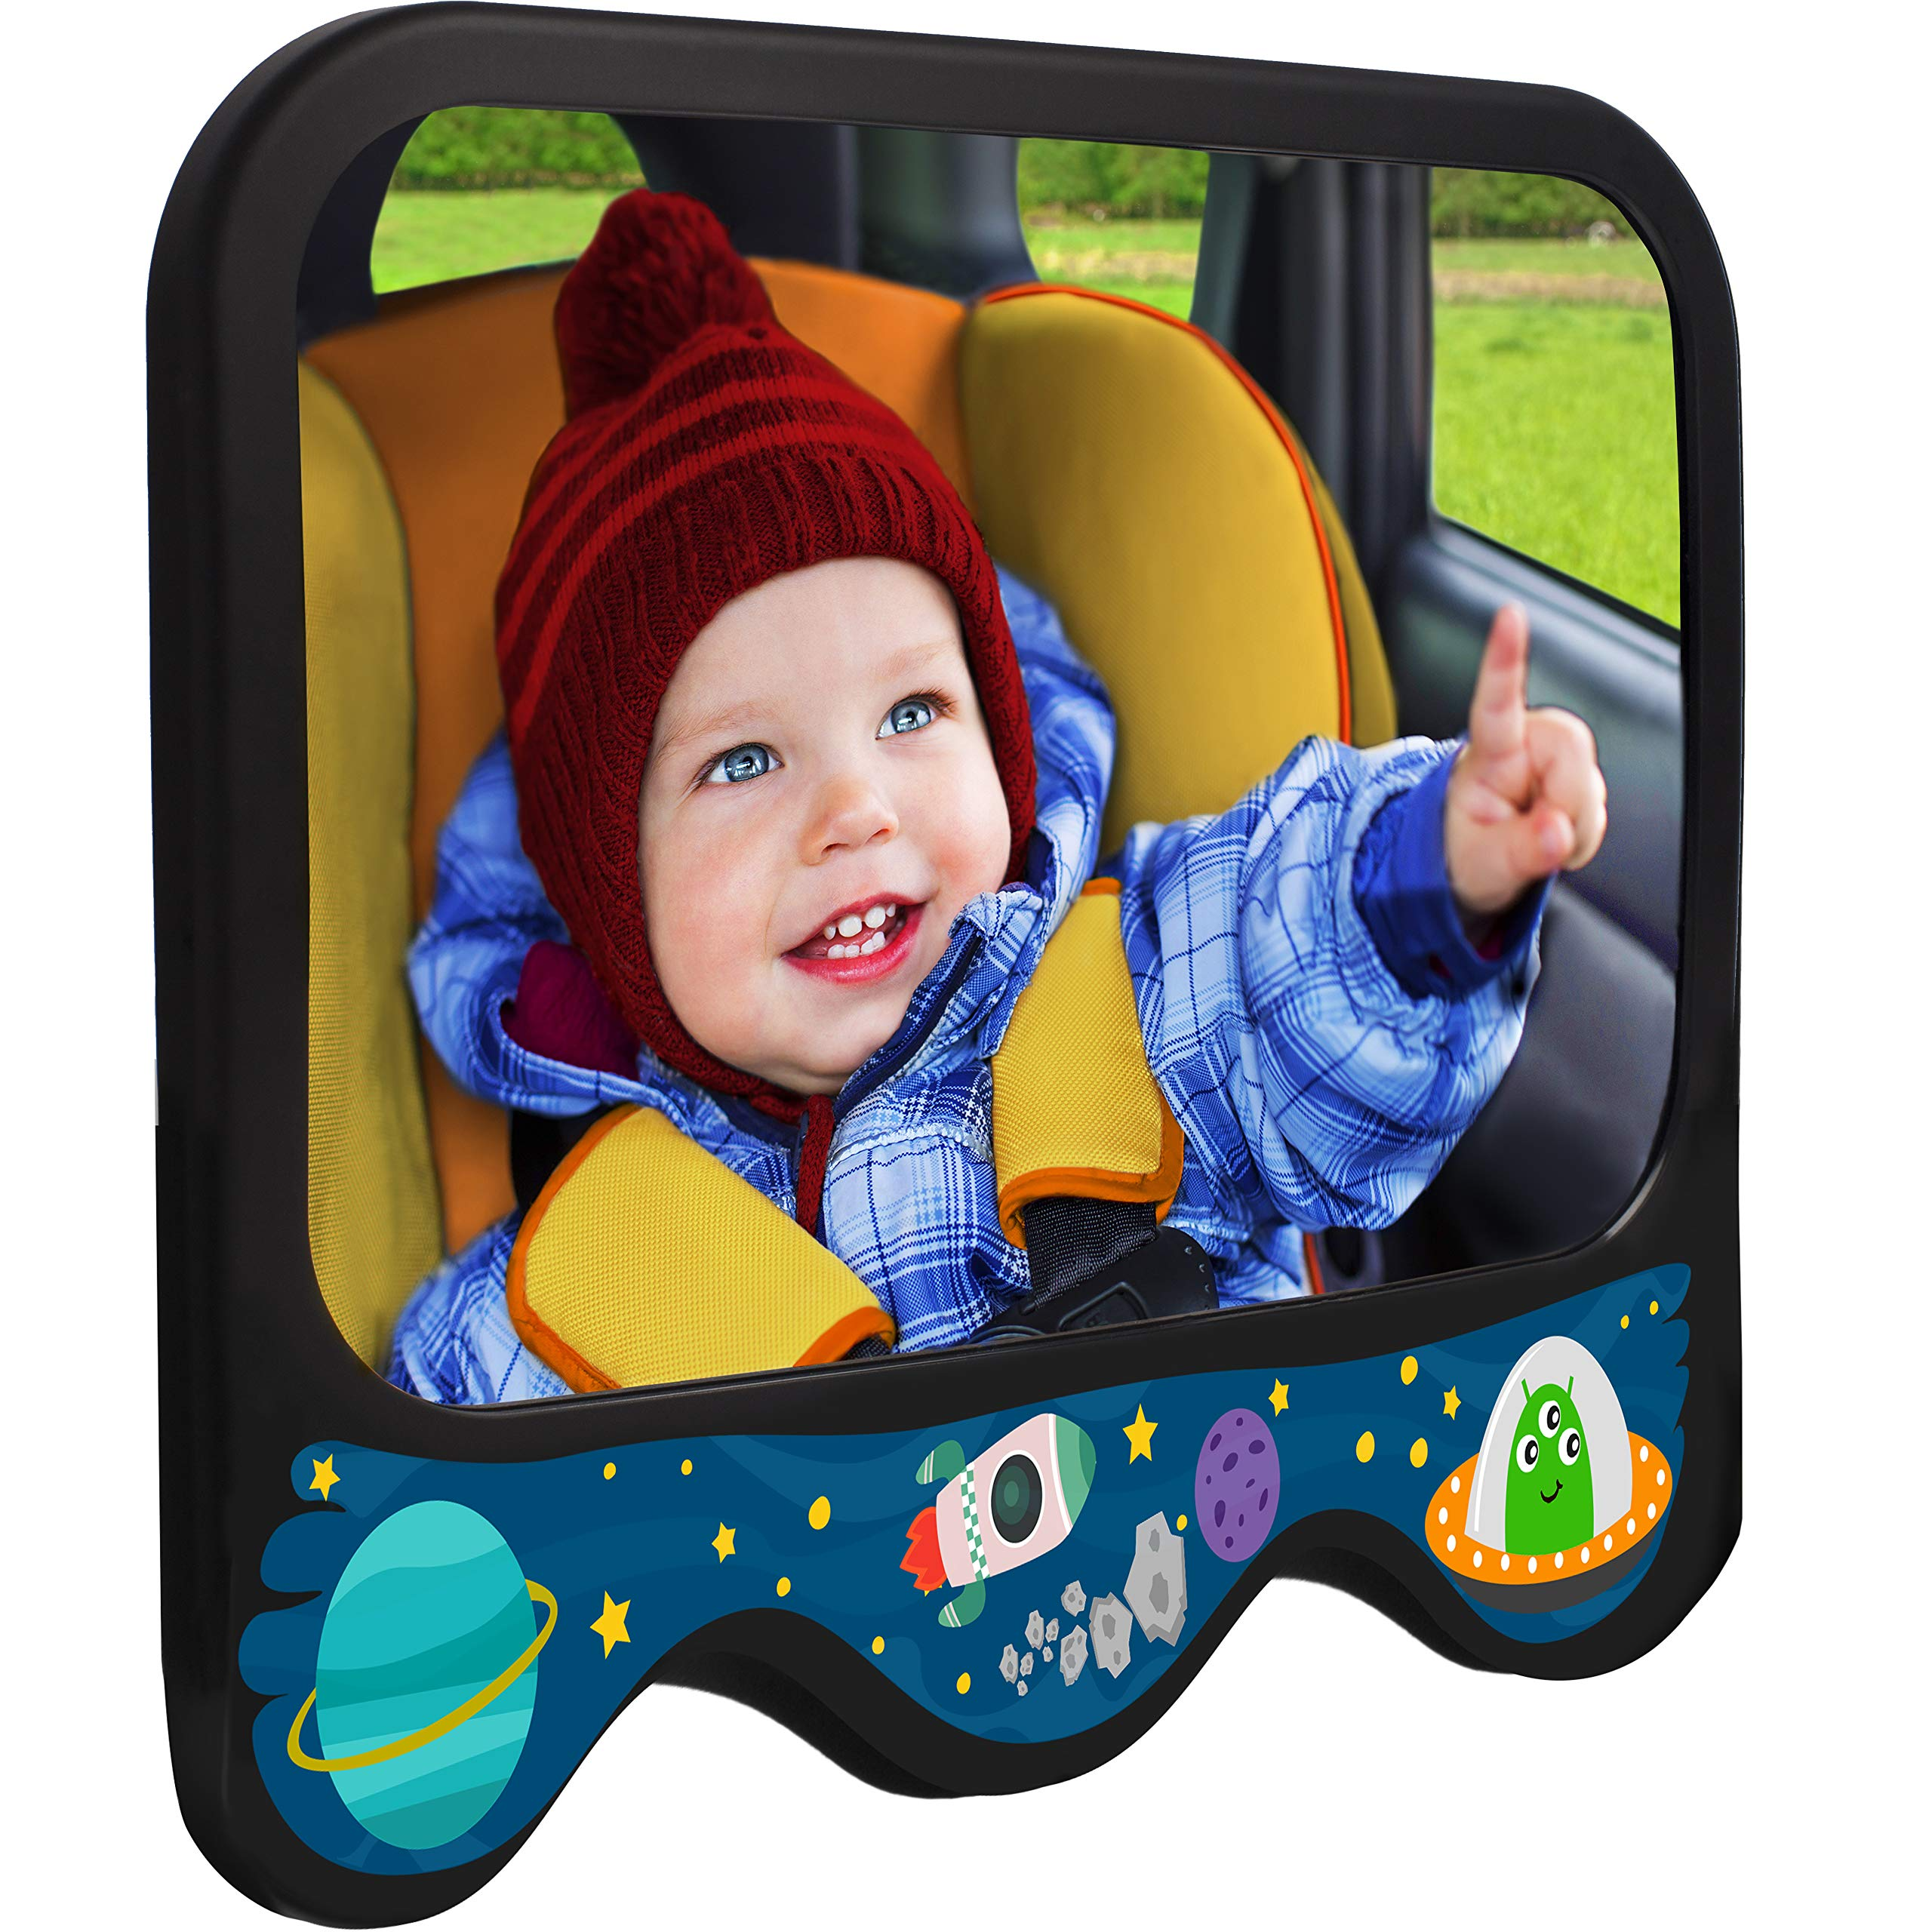 COZY GREENS Baby Car Mirror Space Theme   Baby Mirror for Car Back Seat   Shatterproof, Stable, Crash Tested   100% Lifetime Satisfaction Guarantee   Wide View Carseat Mirrors Backseat Rear Facing